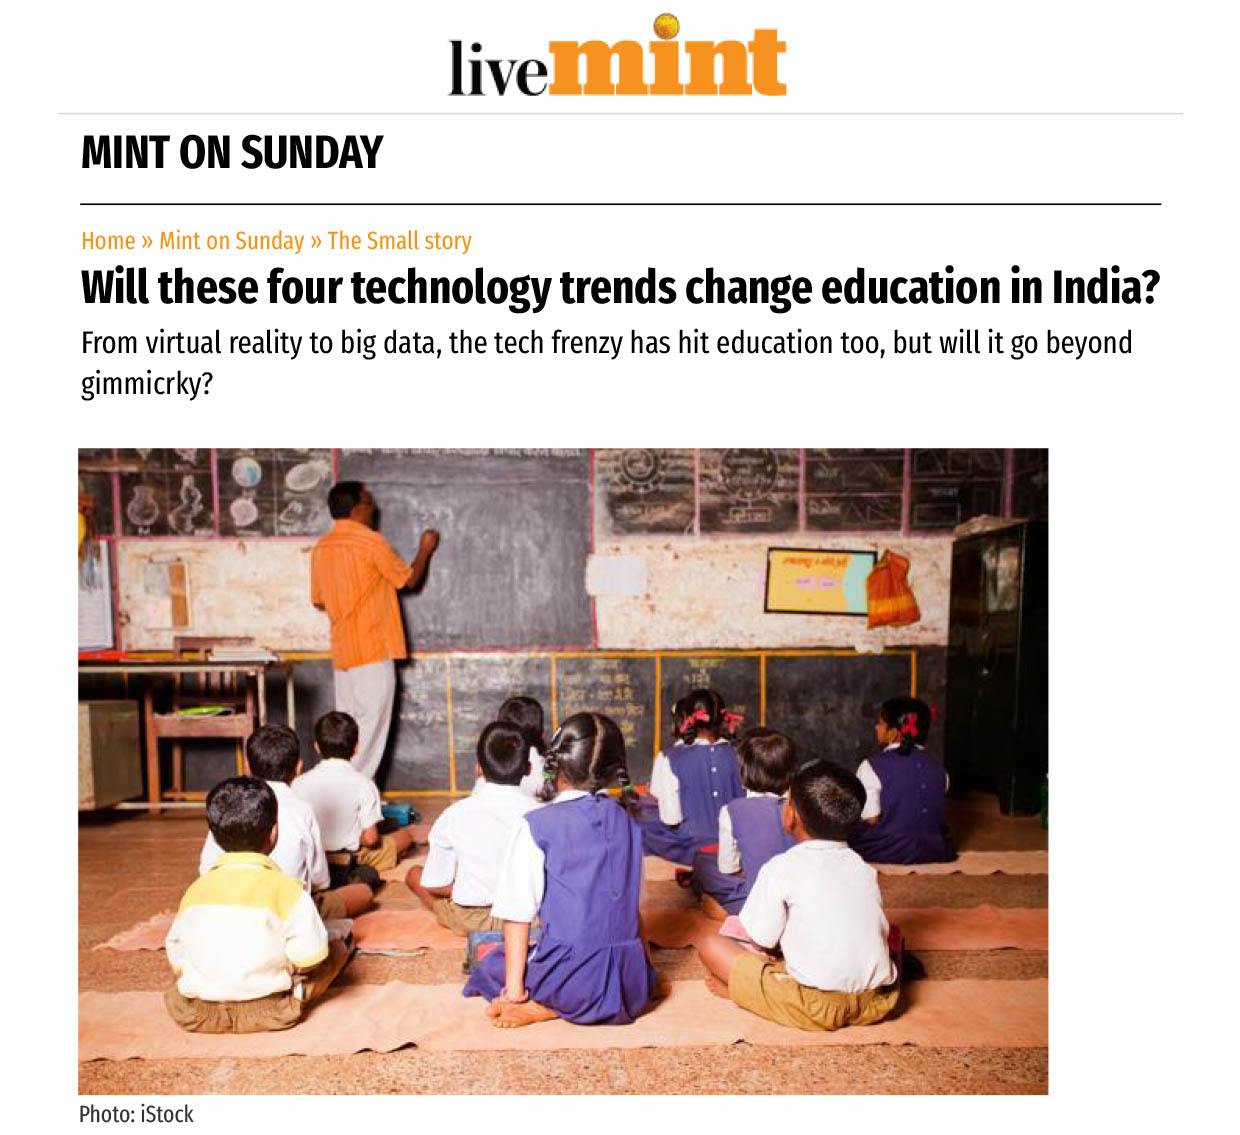 Will these four technology trends change education in India?